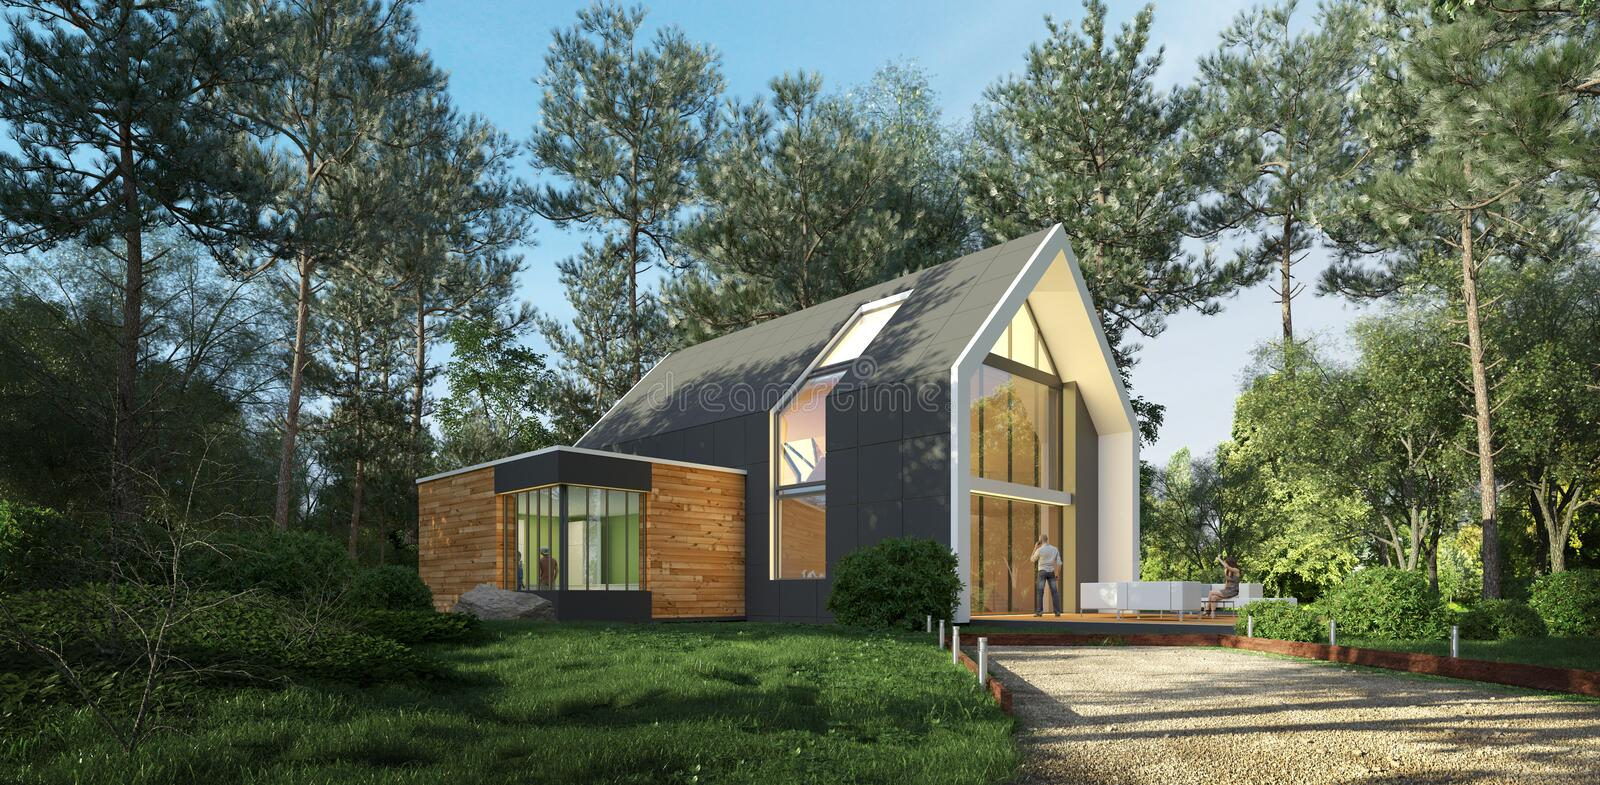 Modern pitched roof house in nature stock images